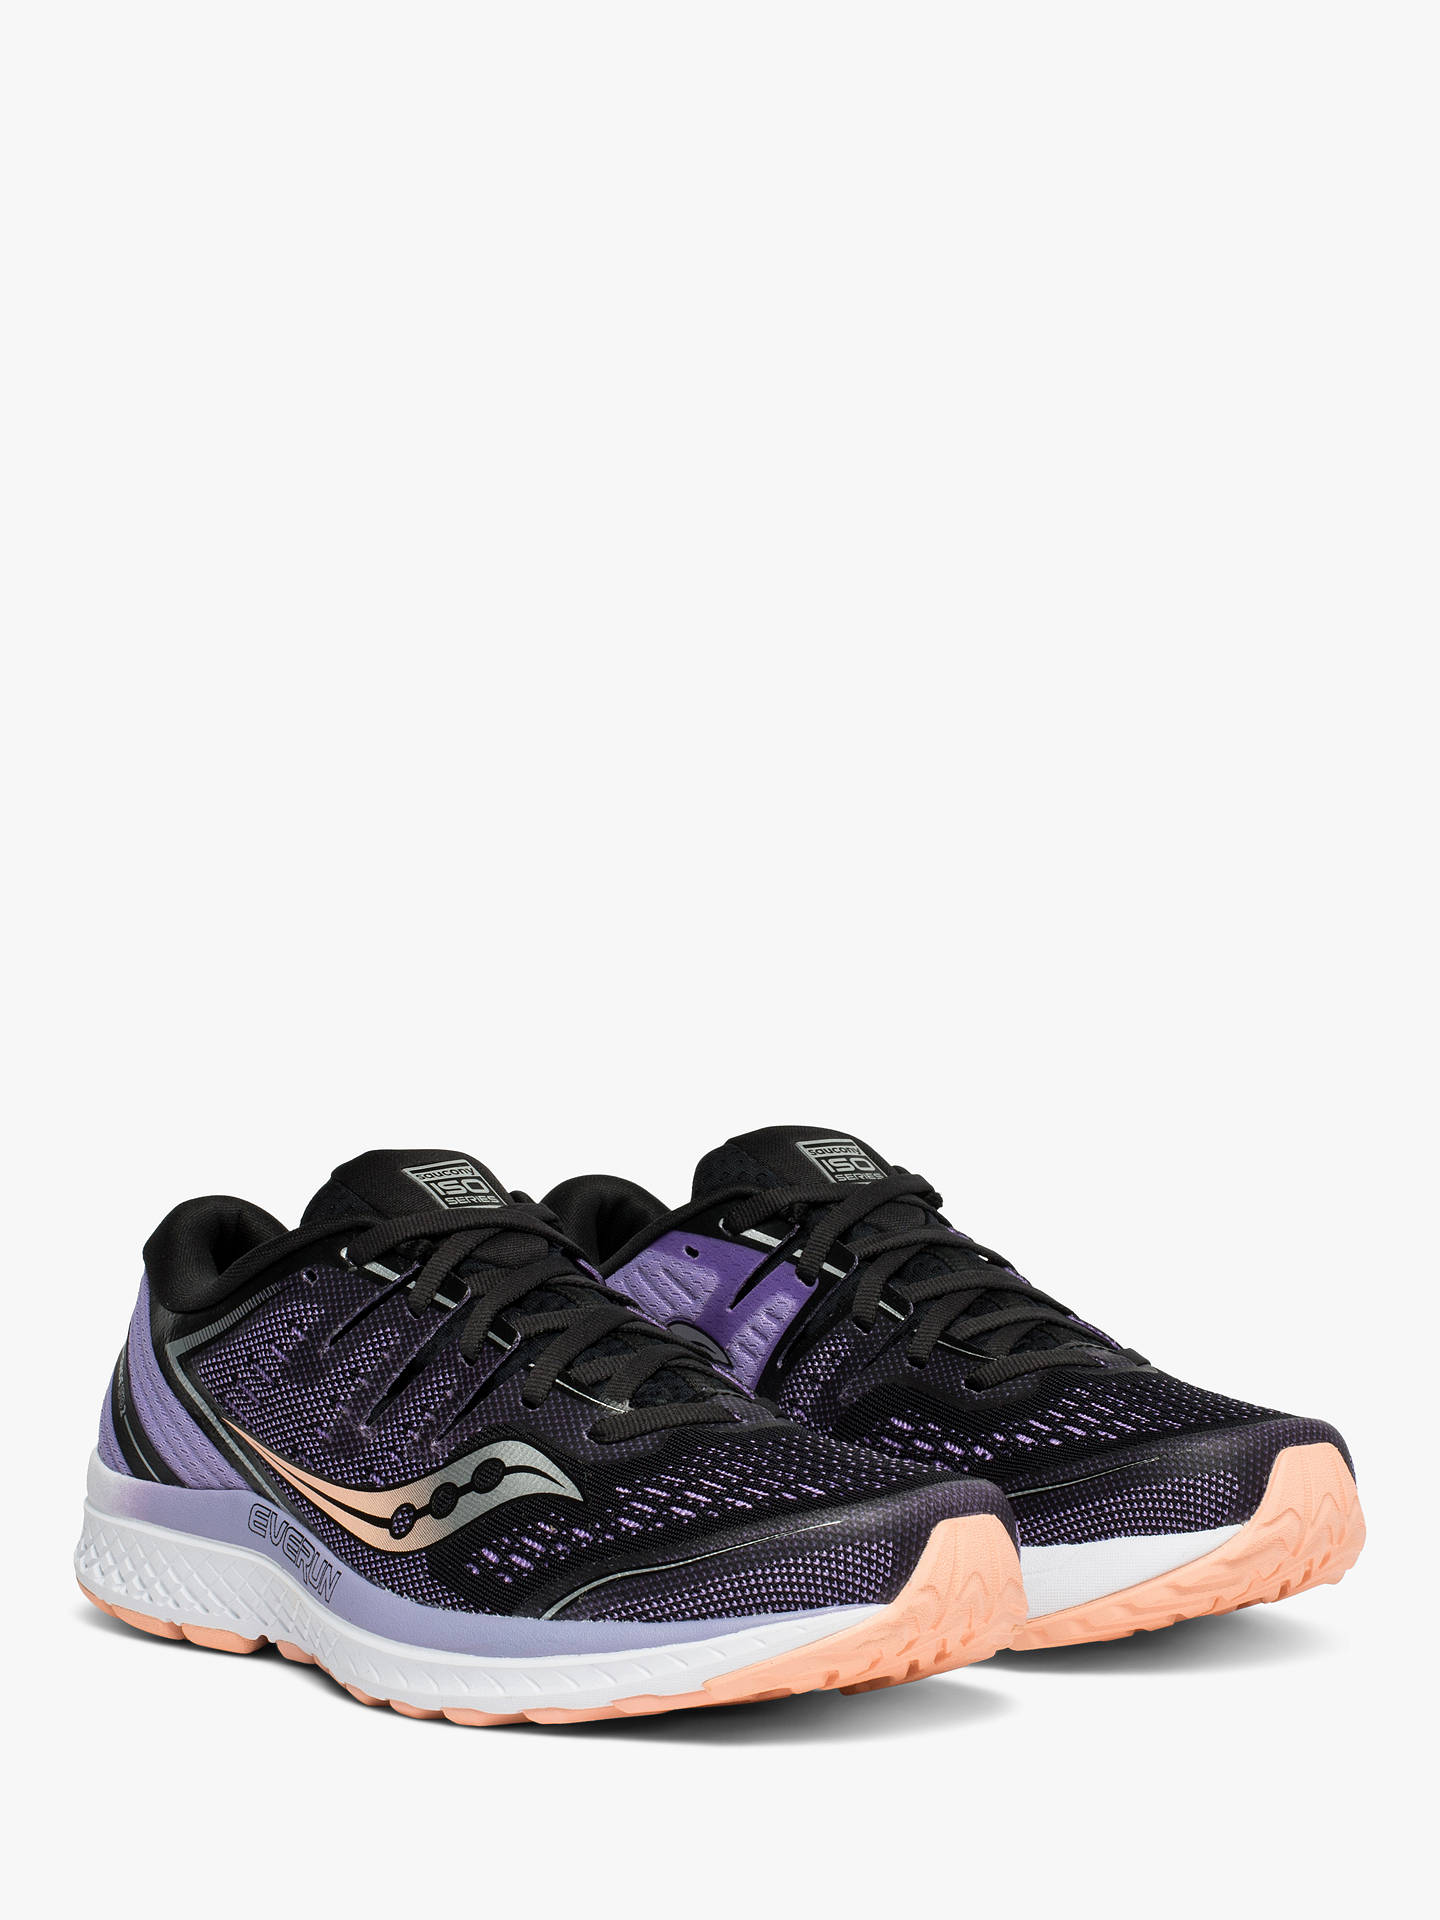 5a5eb43e00bcc ... Buy Saucony Guide ISO 2 Women's Running Shoes, Black/Purple, 4 Online at